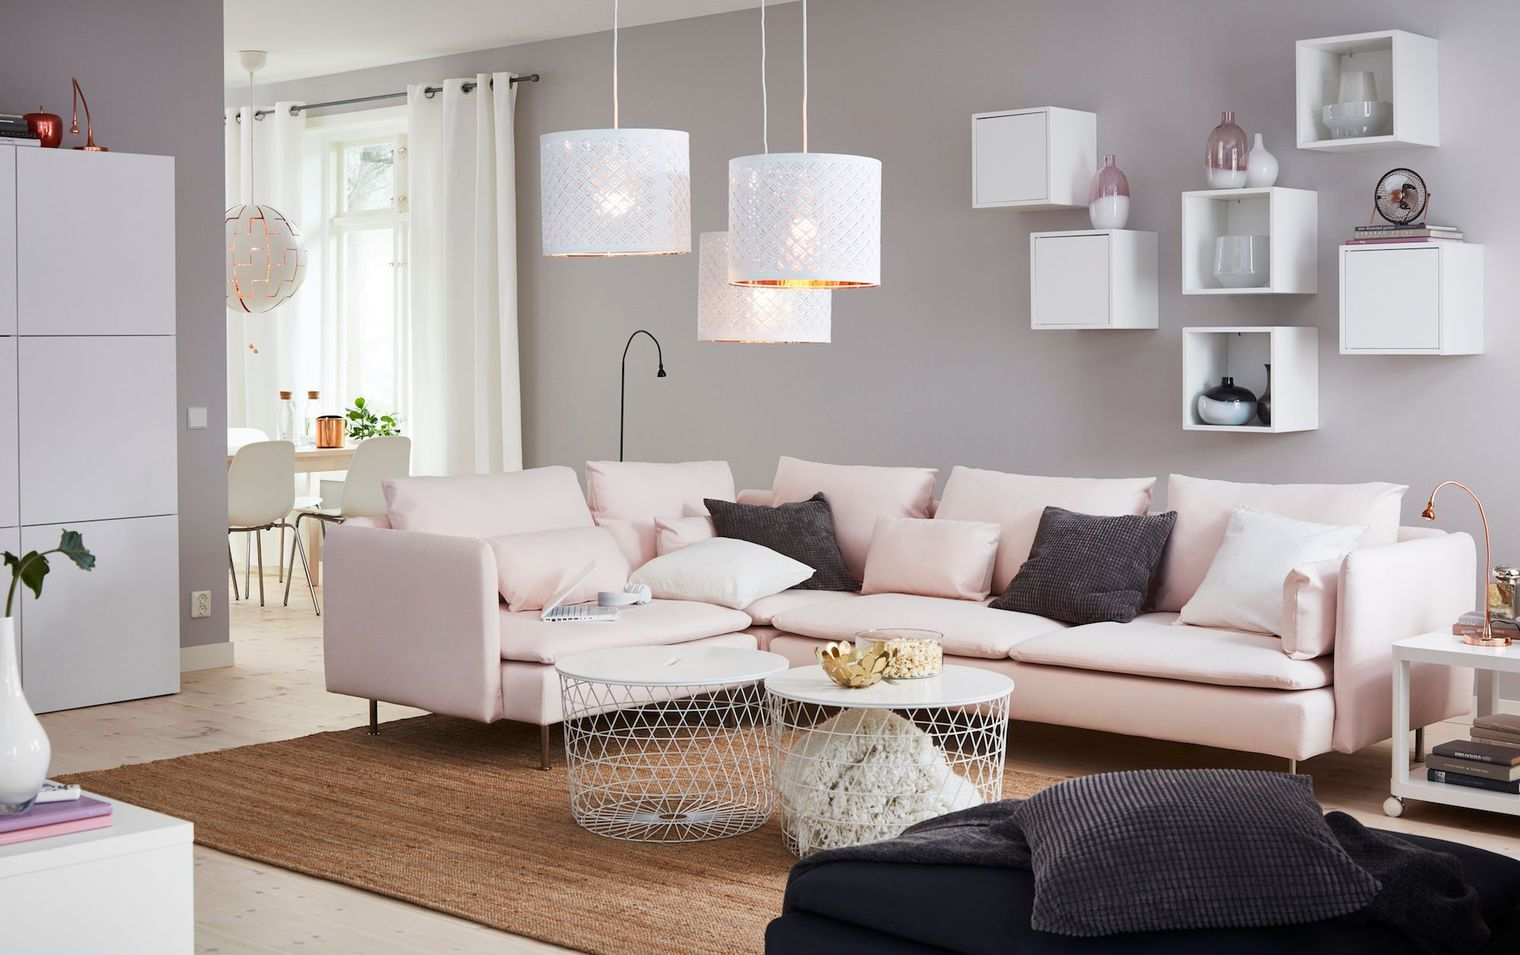 table de rangement kvistbro coloris blanc h 61 cm 49 euros ikea ambiance pinterest. Black Bedroom Furniture Sets. Home Design Ideas